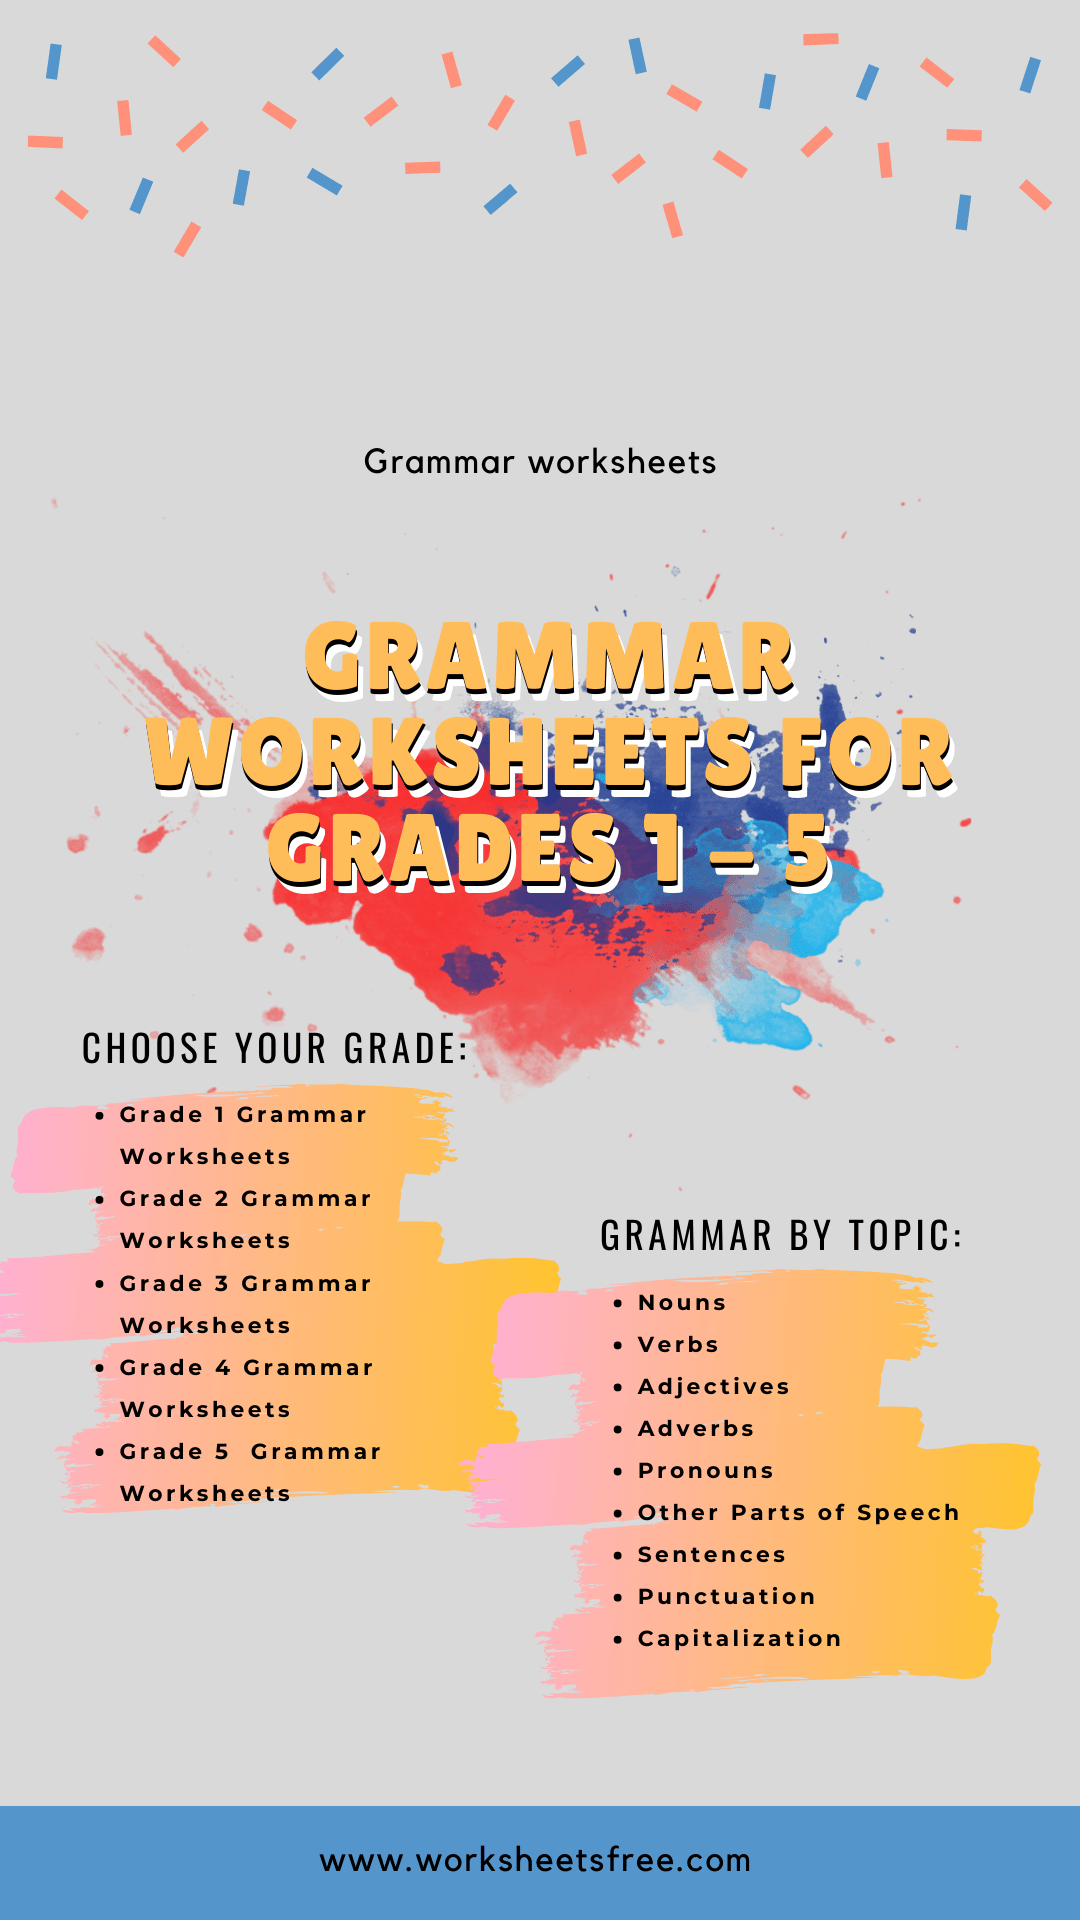 Grammar worksheets for grades 1 – 5 : Grammar Worksheets   Worksheets Free [ 1920 x 1080 Pixel ]